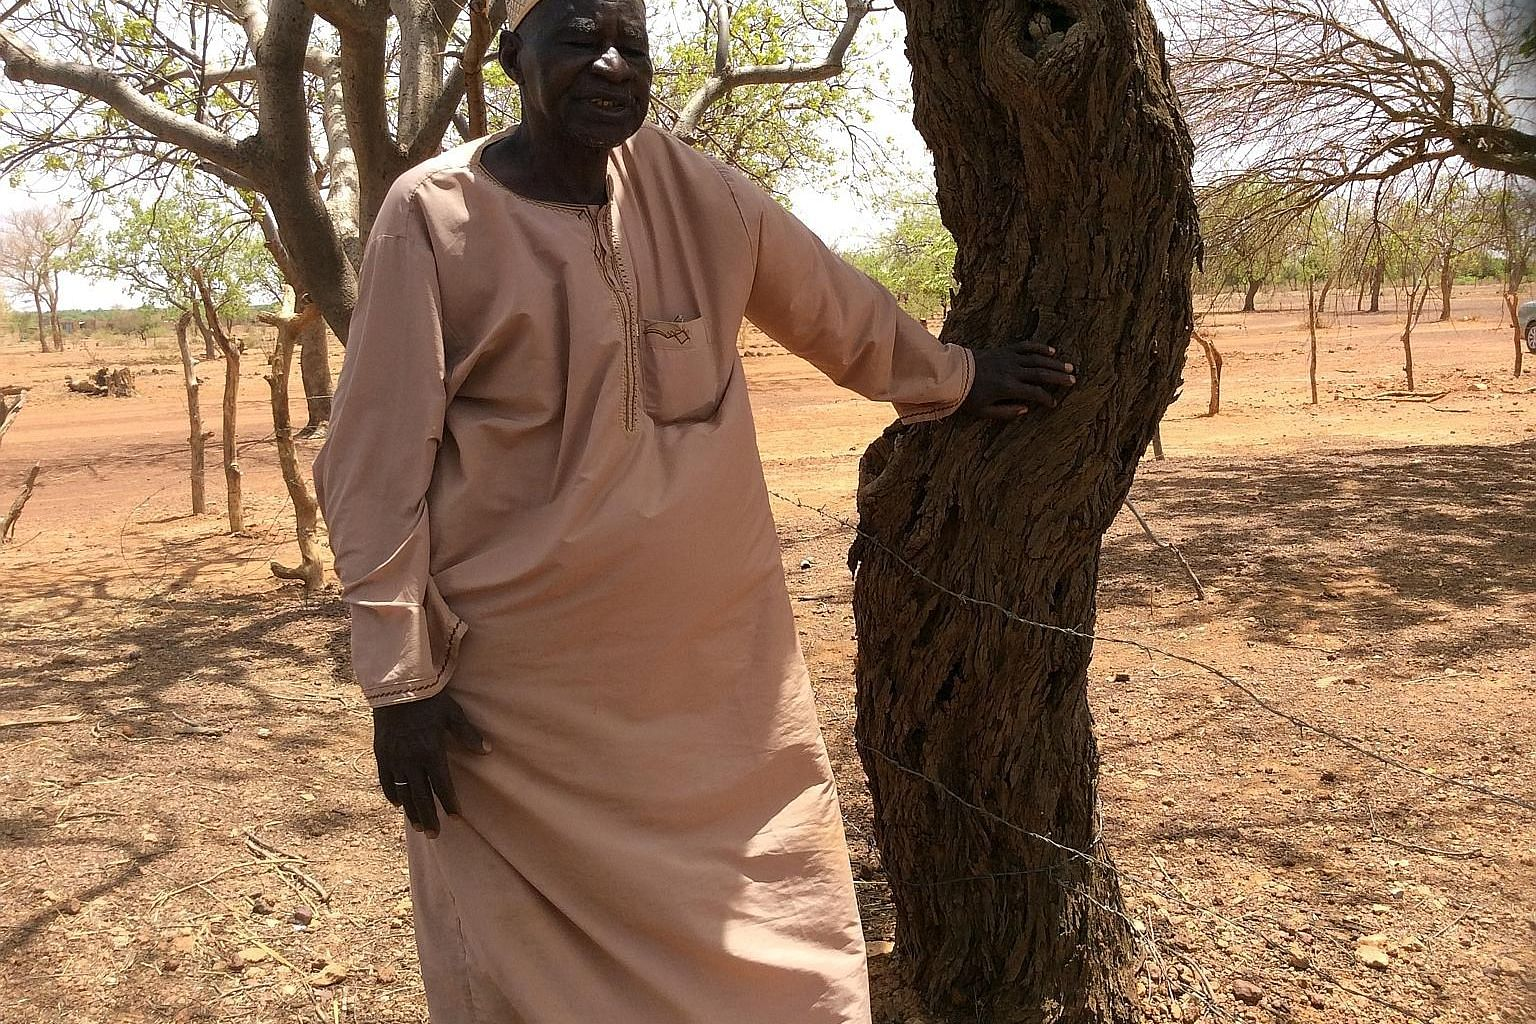 Mr Yacouba Sawadogo's re-vegetation of the desert involves digging holes in the ground and filling them with organic waste. This draws termites which then dig tunnels that enable the collection of rainwater in the rainy season. All that is left is to